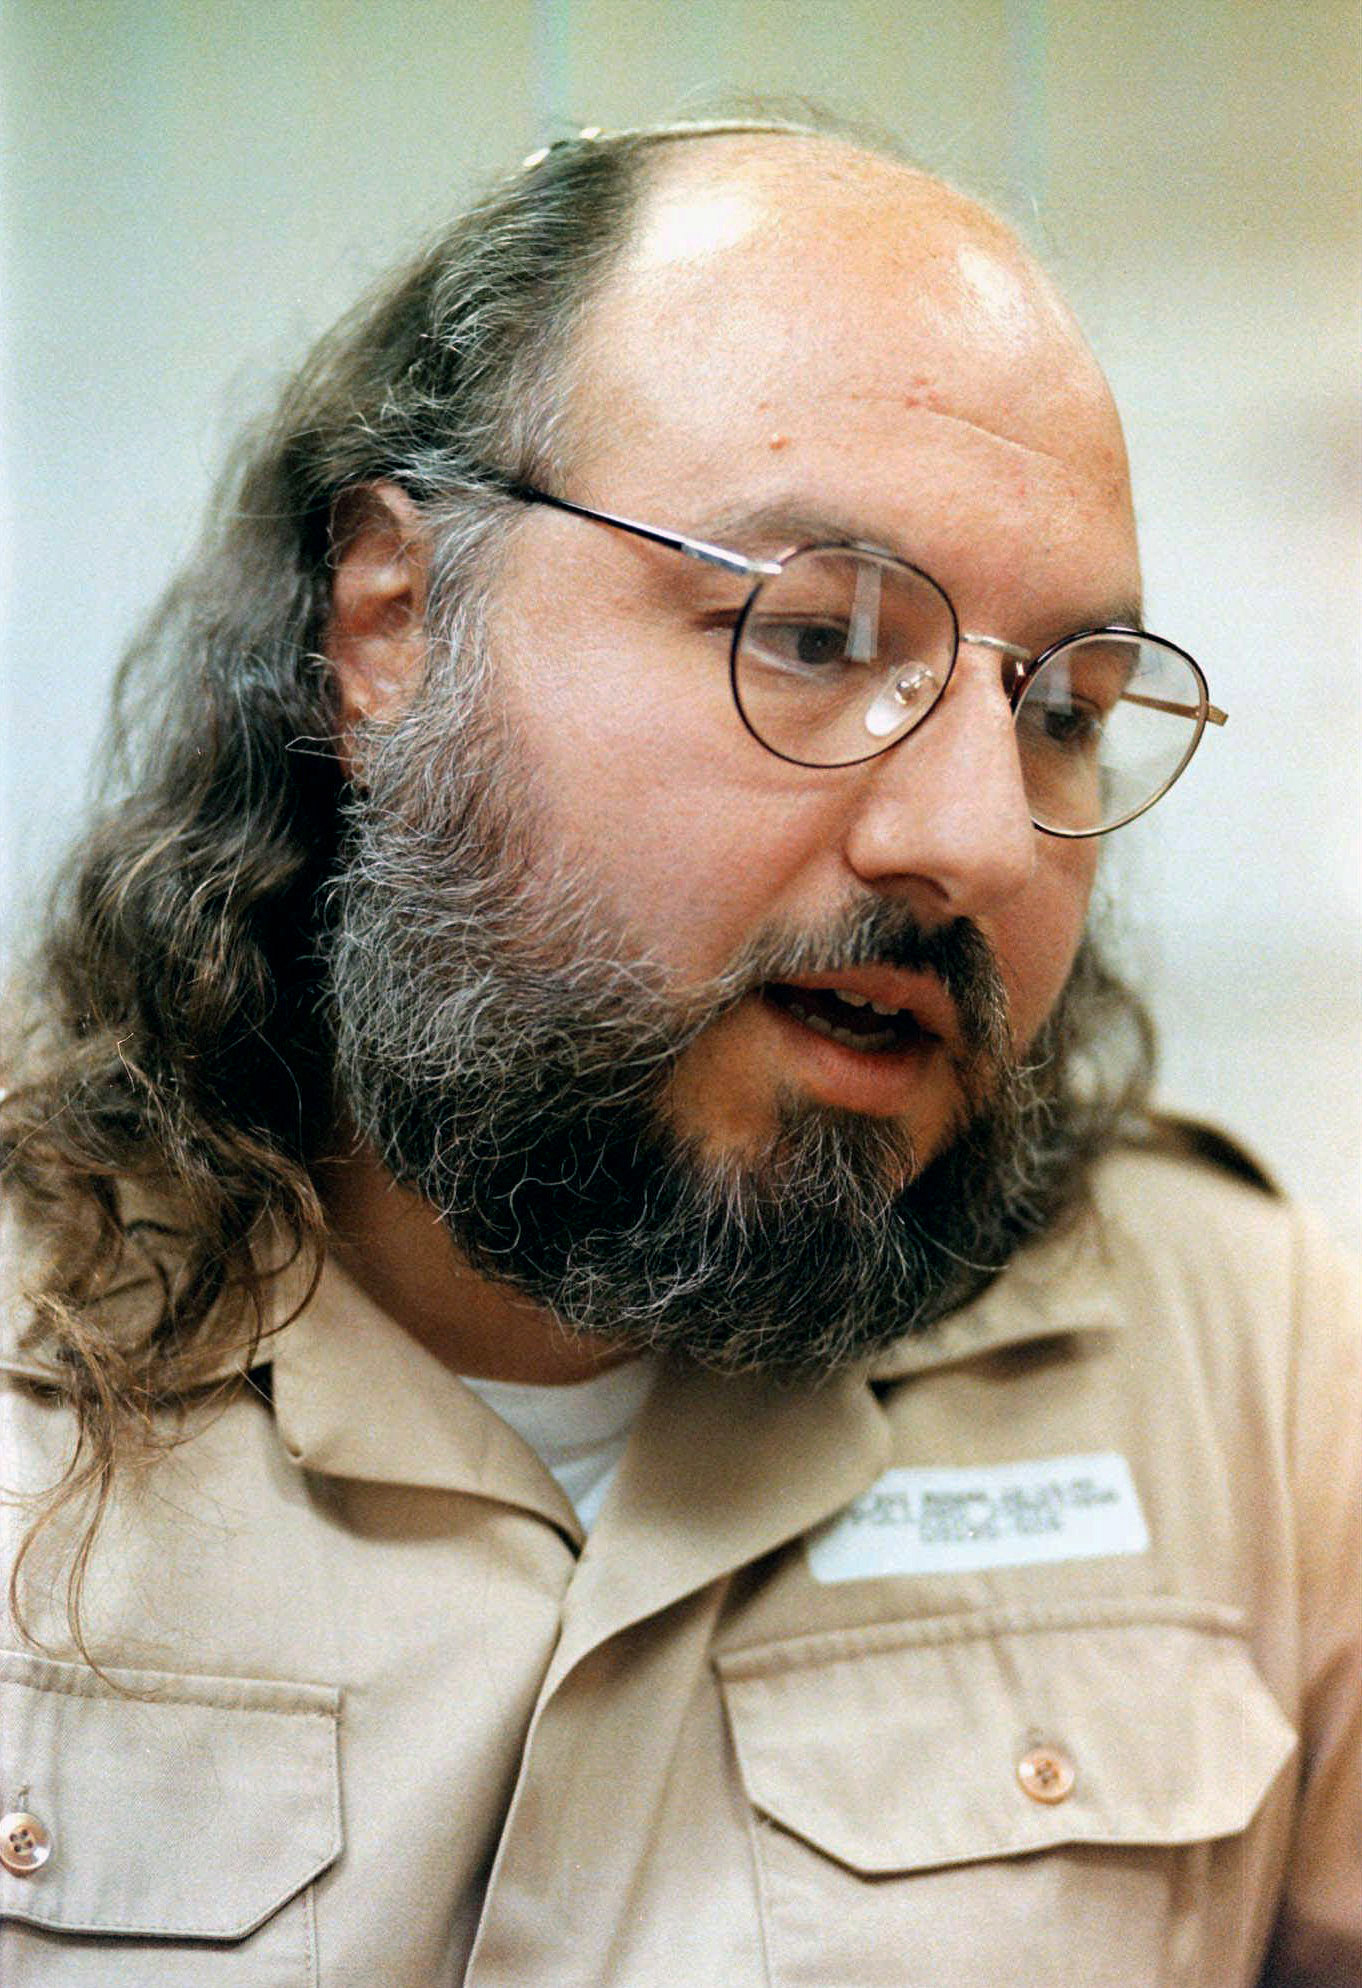 In this May 15, 1998 file photo, Jonathan Pollard speaks during an interview in a conference room at the Federal Correctional Institution in Butner, N.C.